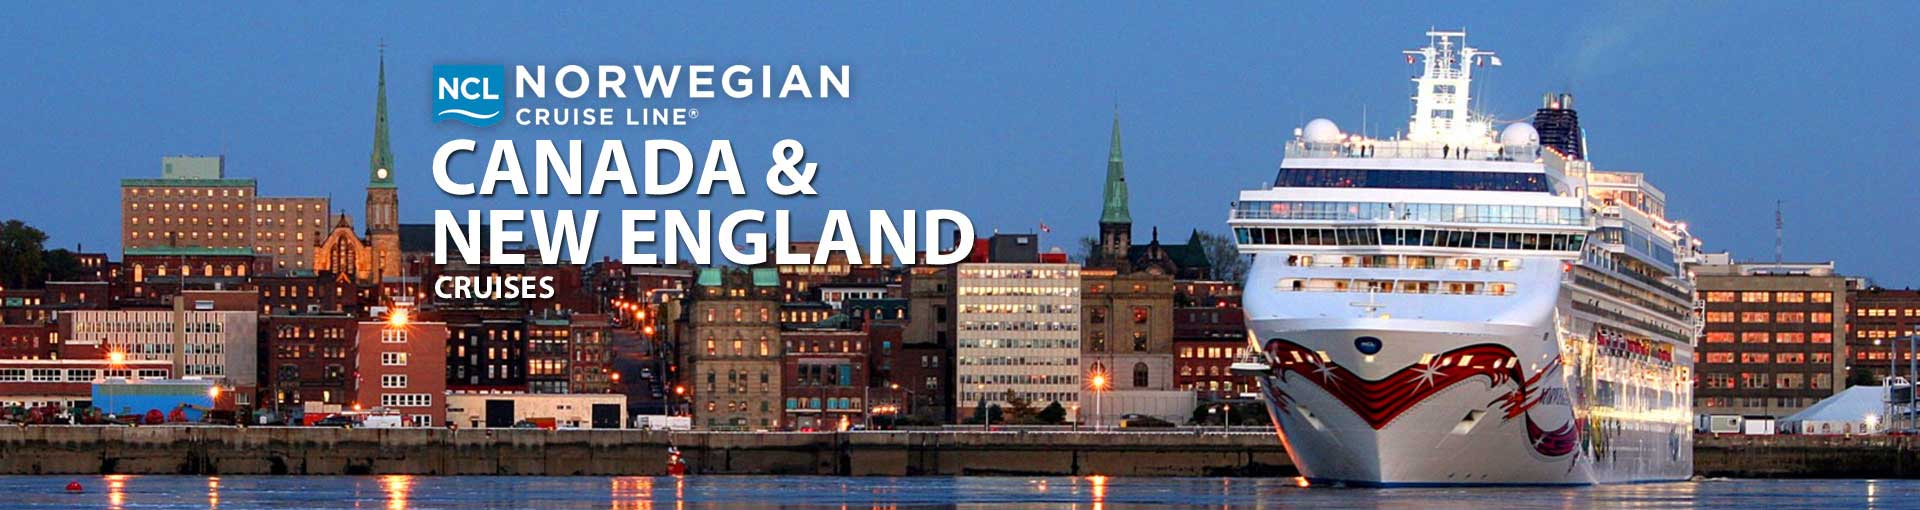 Norwegian Cruise Line Canada New England Cruises